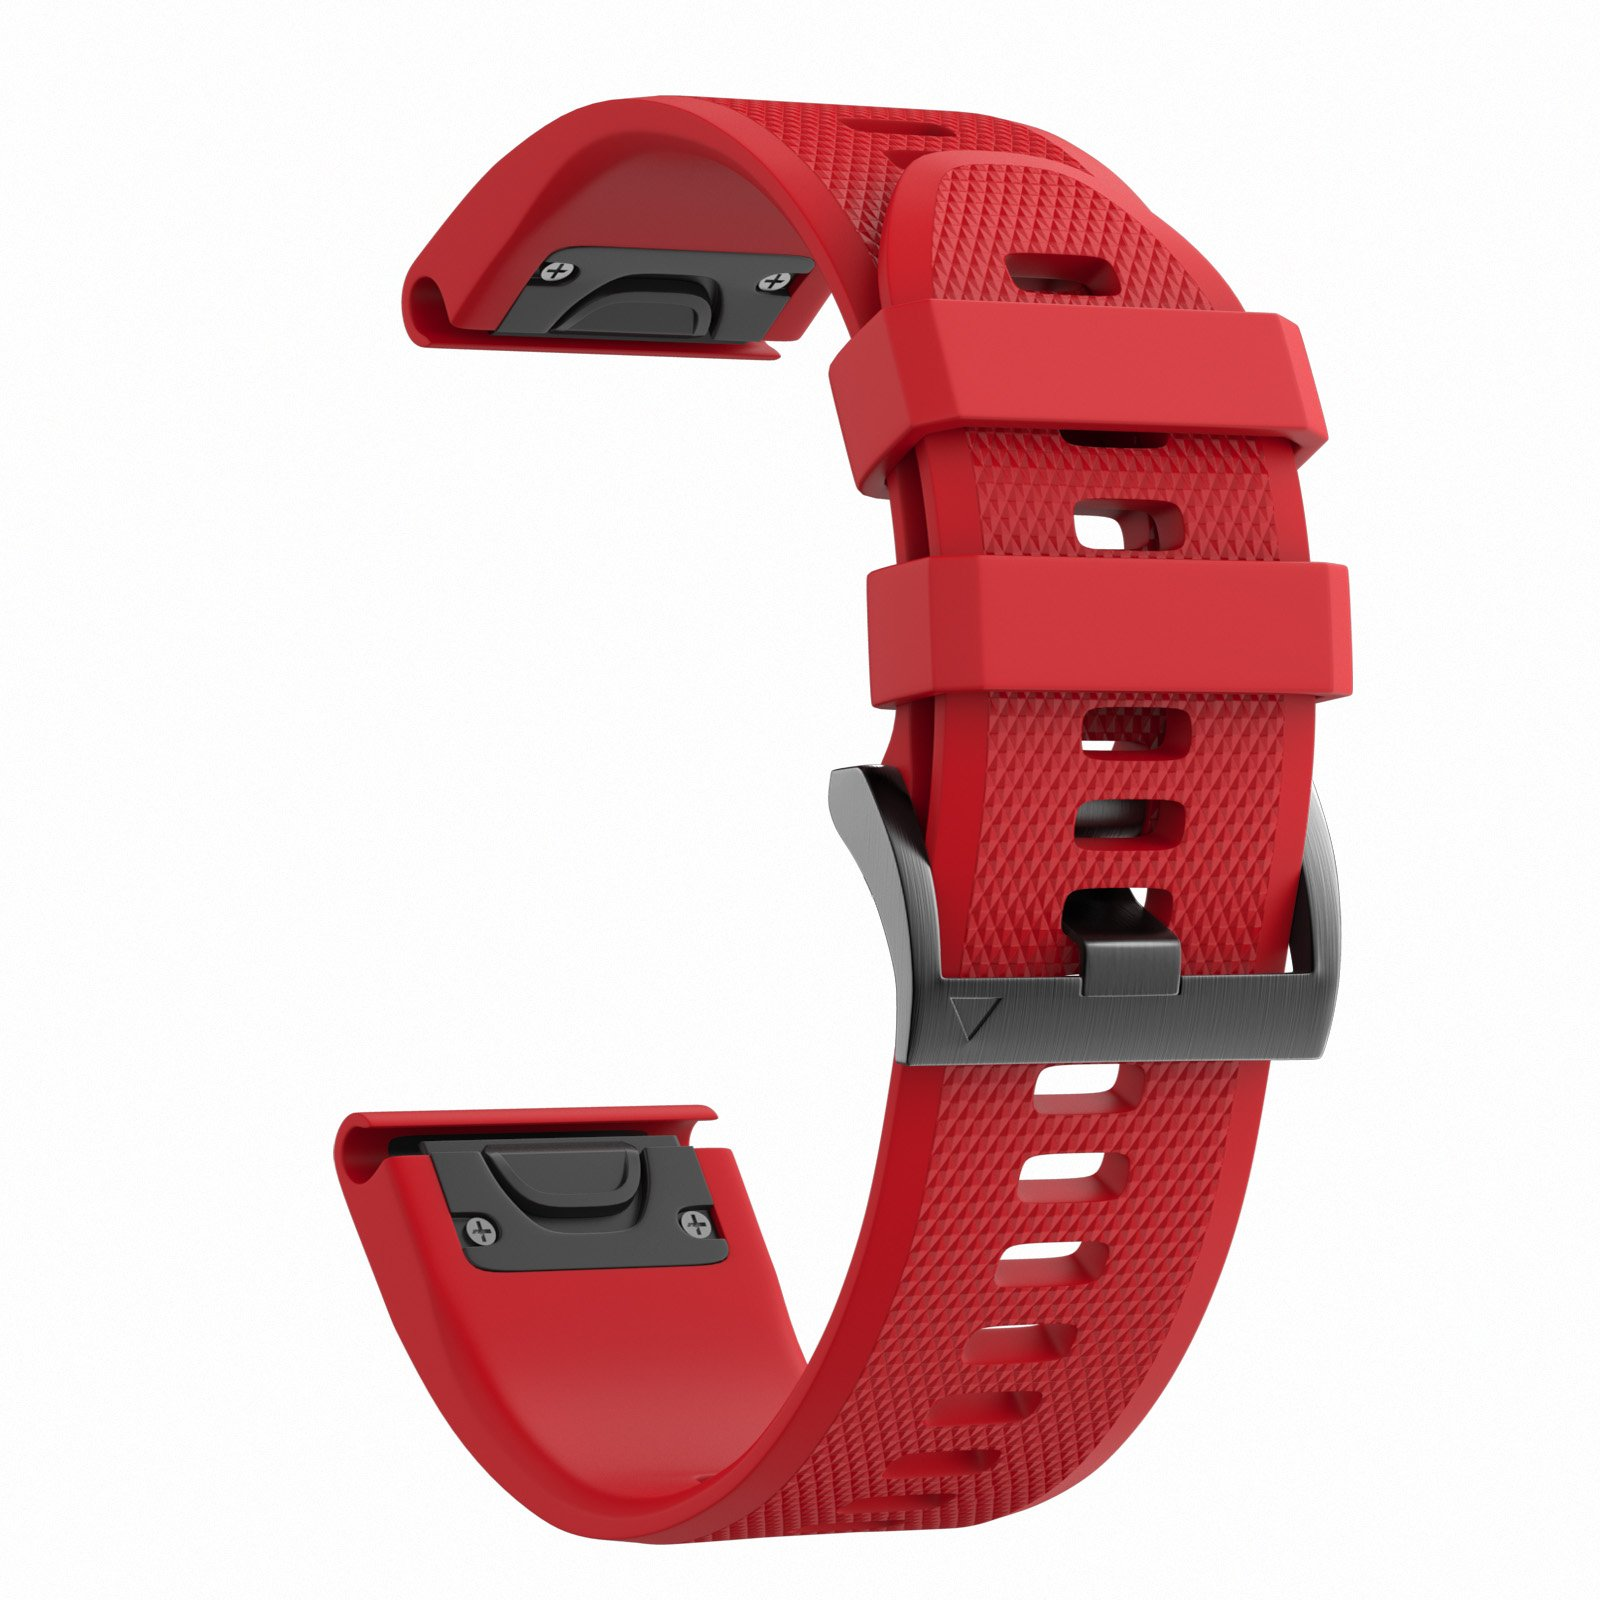 ANCOOL Compatible with Forerunner 935 Bands Easy Fit Mechanism Silicone Watch Bands Replacement for Forerunner 935/Fenix 5/Fenix 5plus/Approach S60 Smartwatches, 7-Pack by ANCOOL (Image #3)